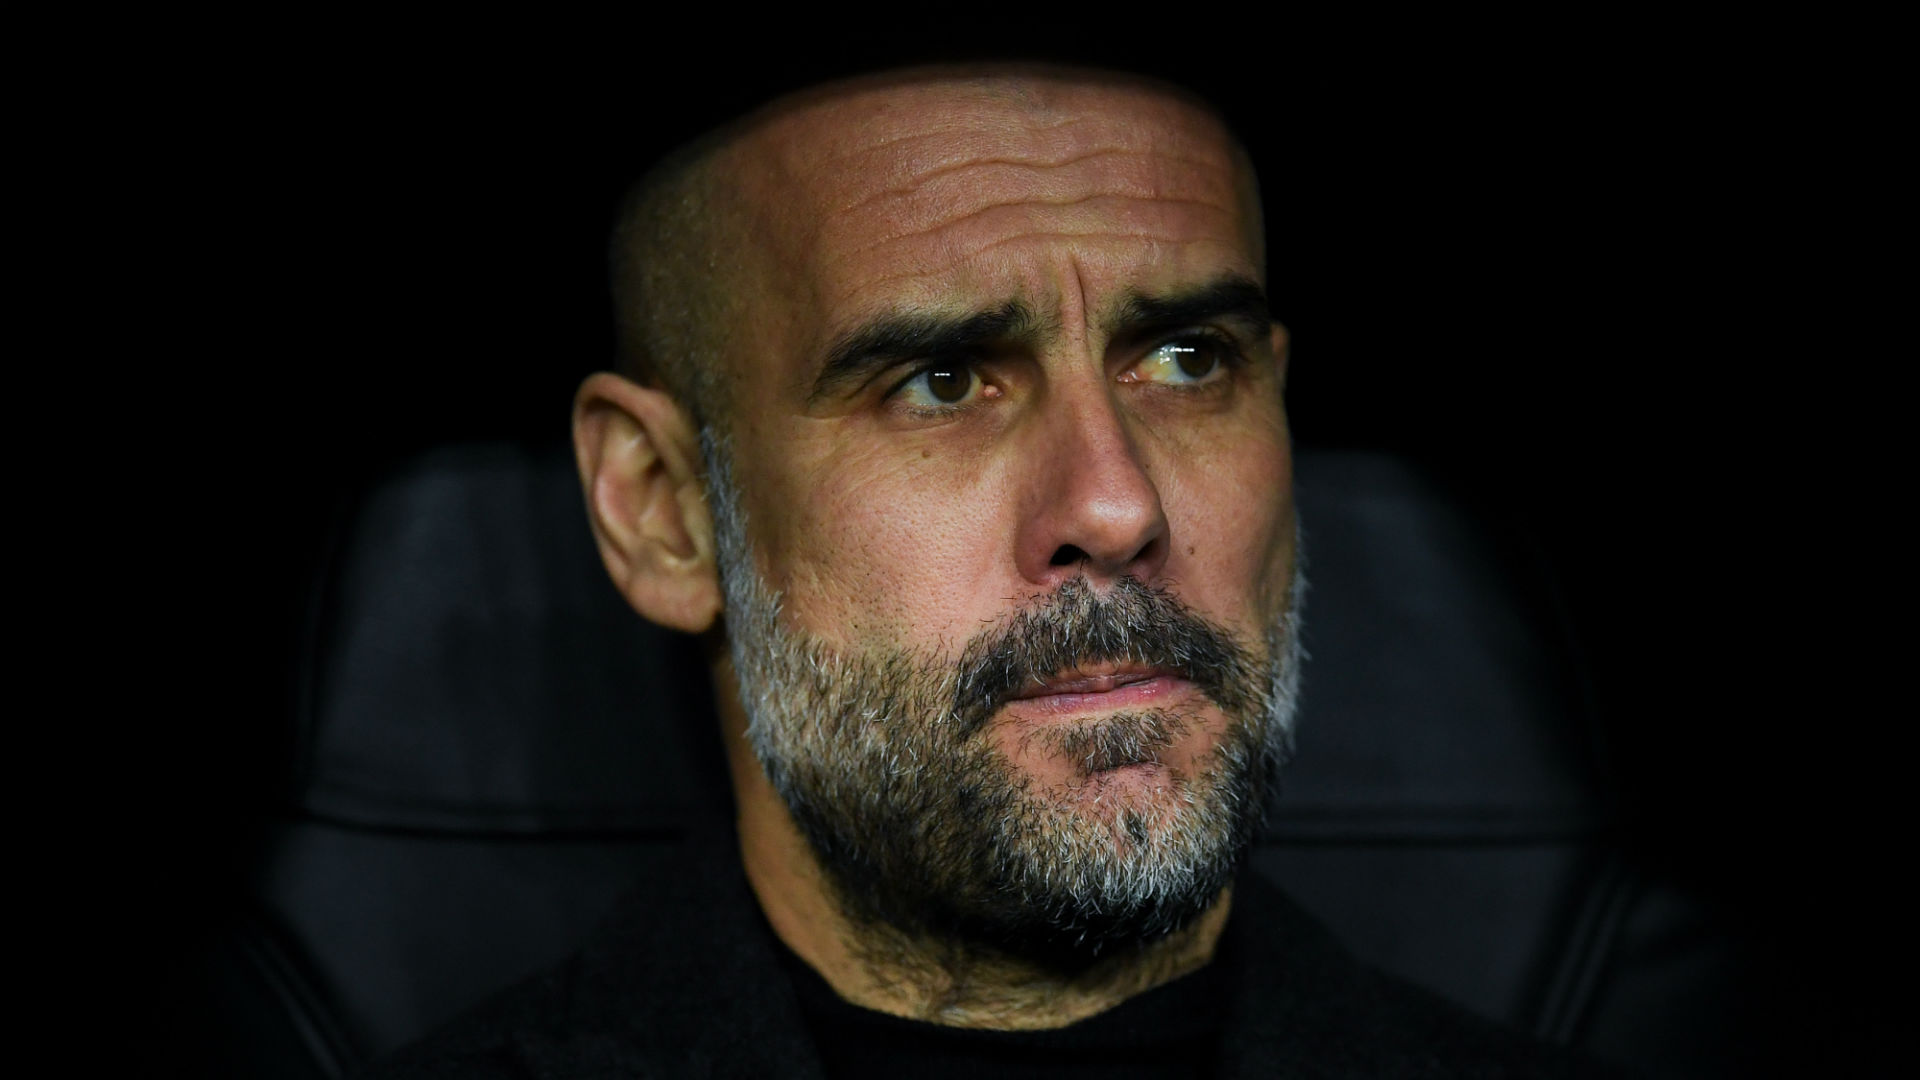 Pep Guardiola's Mom Dies After Contracting Coronavirus